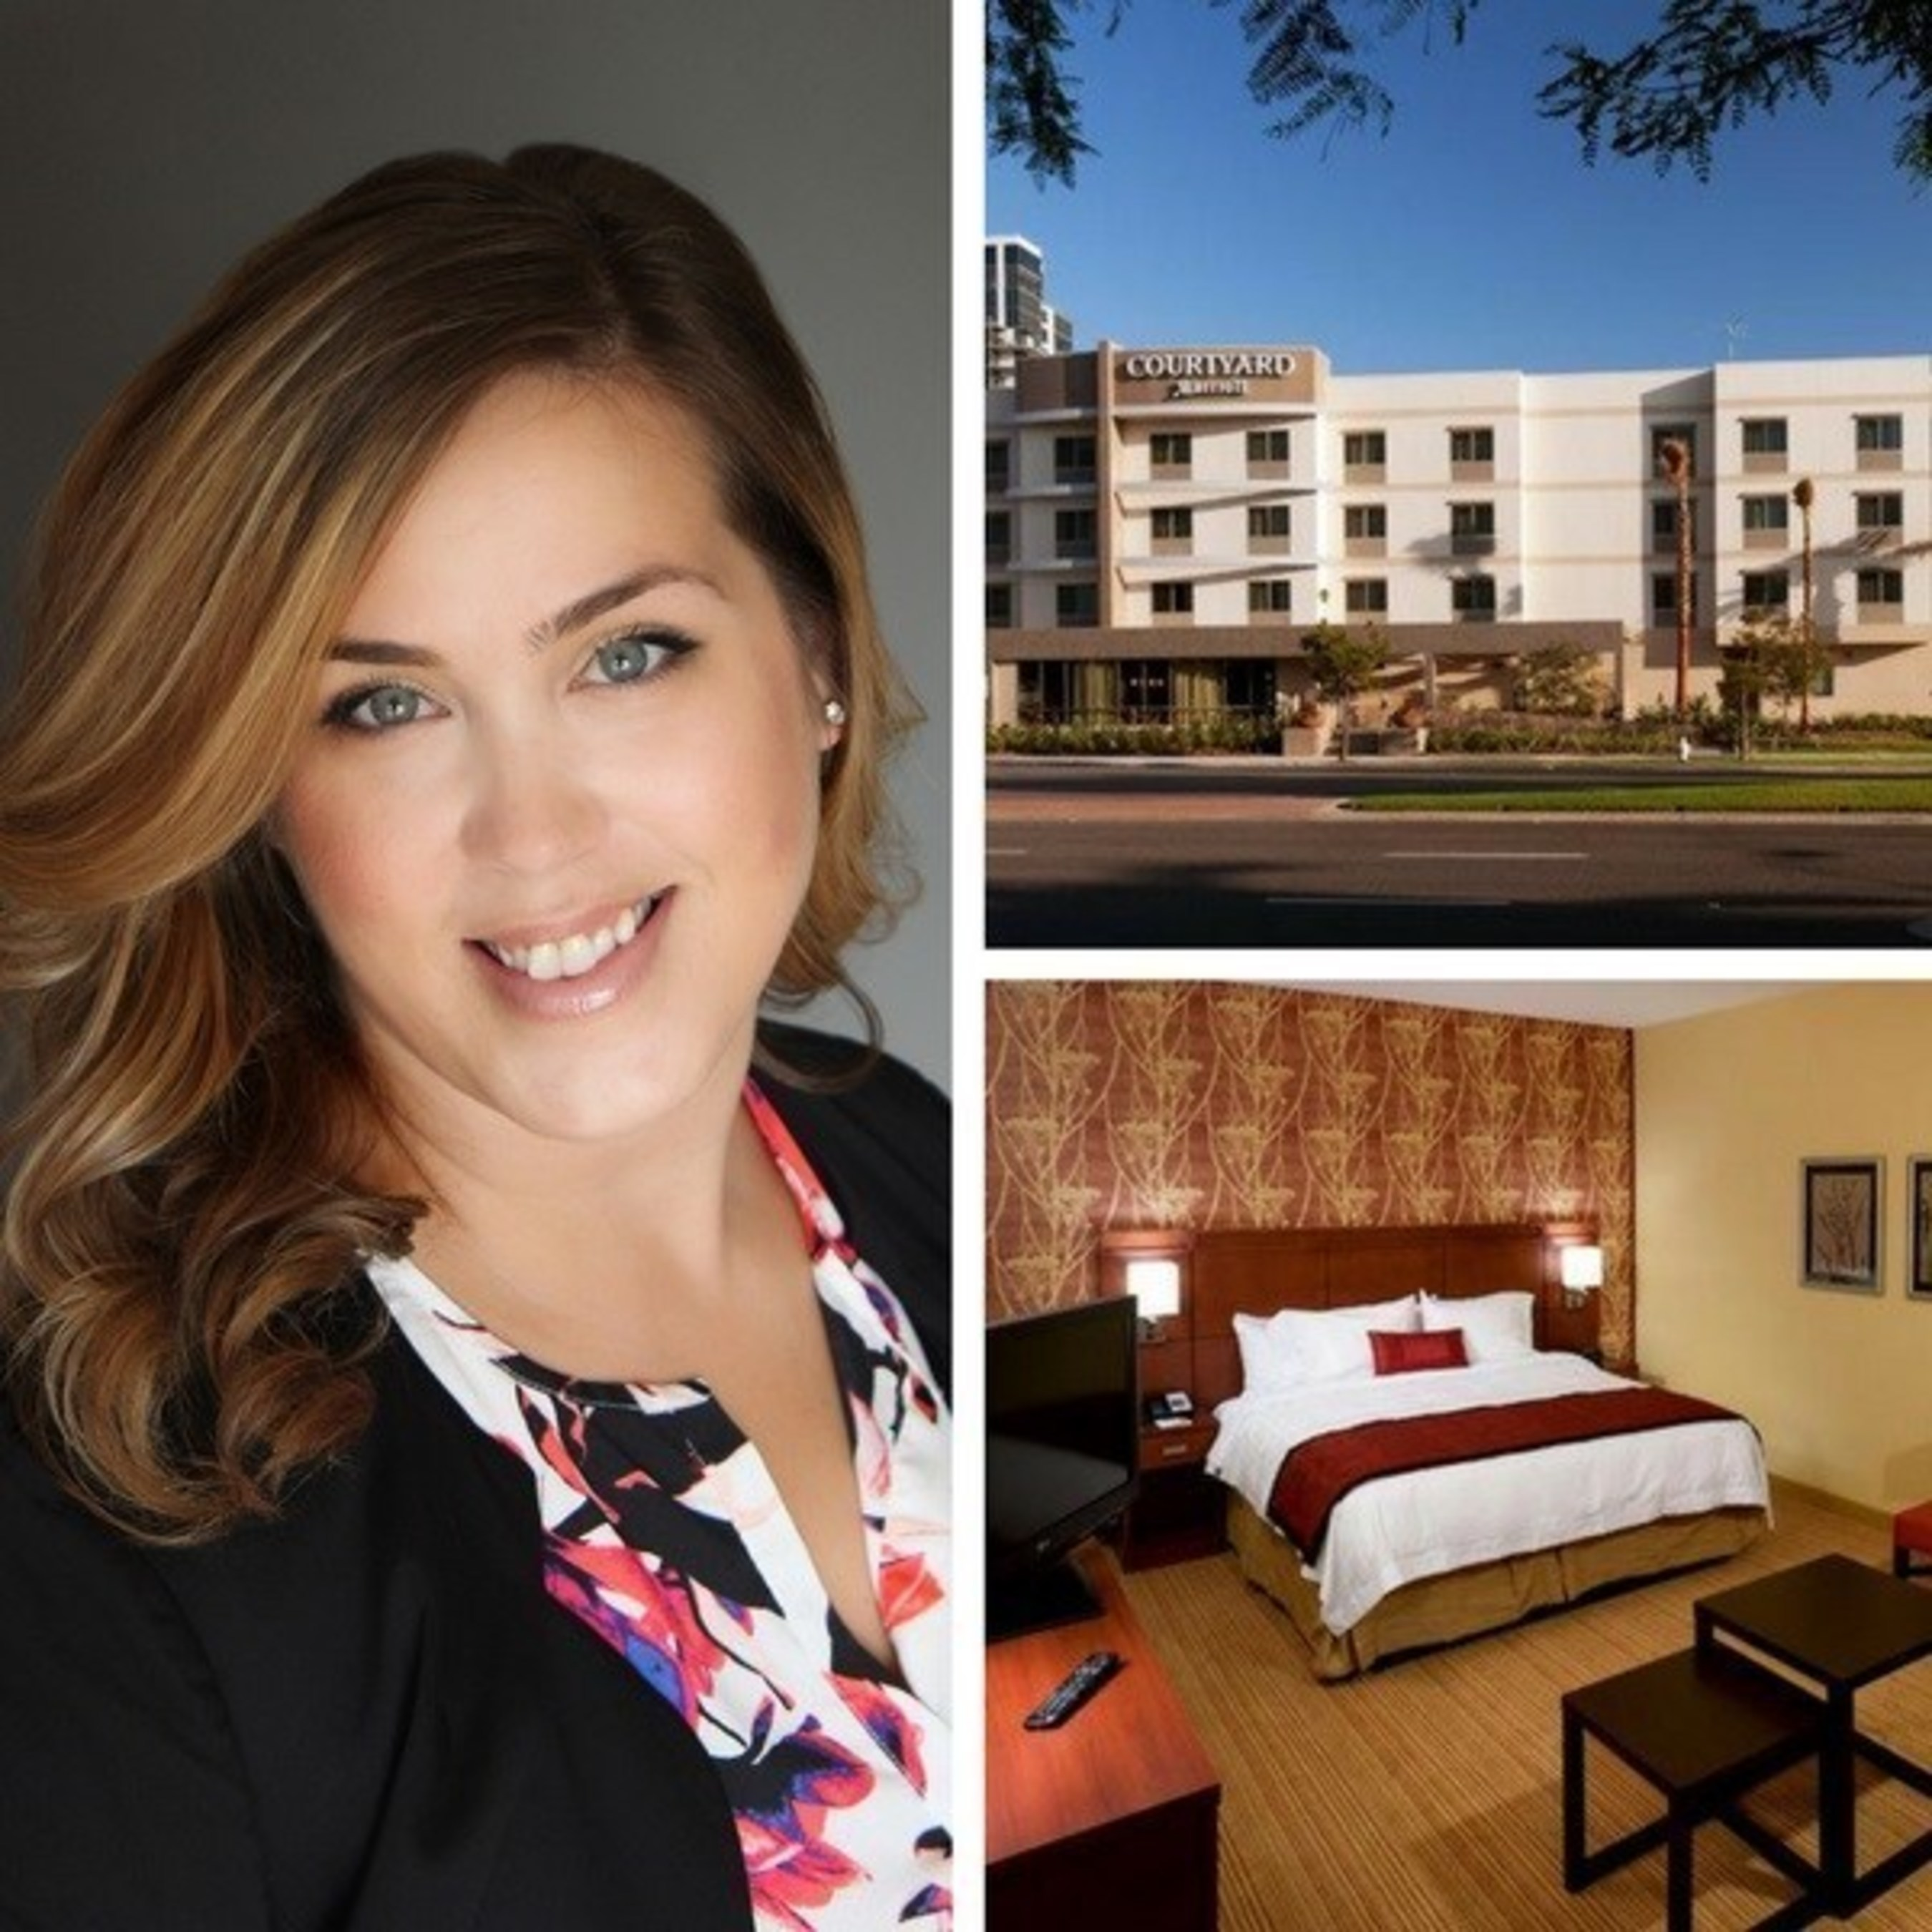 Marjorie Cullen has been selected by Dimension Development as the new general manager at Courtyard Santa Ana Orange County. For information, visit www.marriott.com/SNAOG or call 1-714-668-9993.